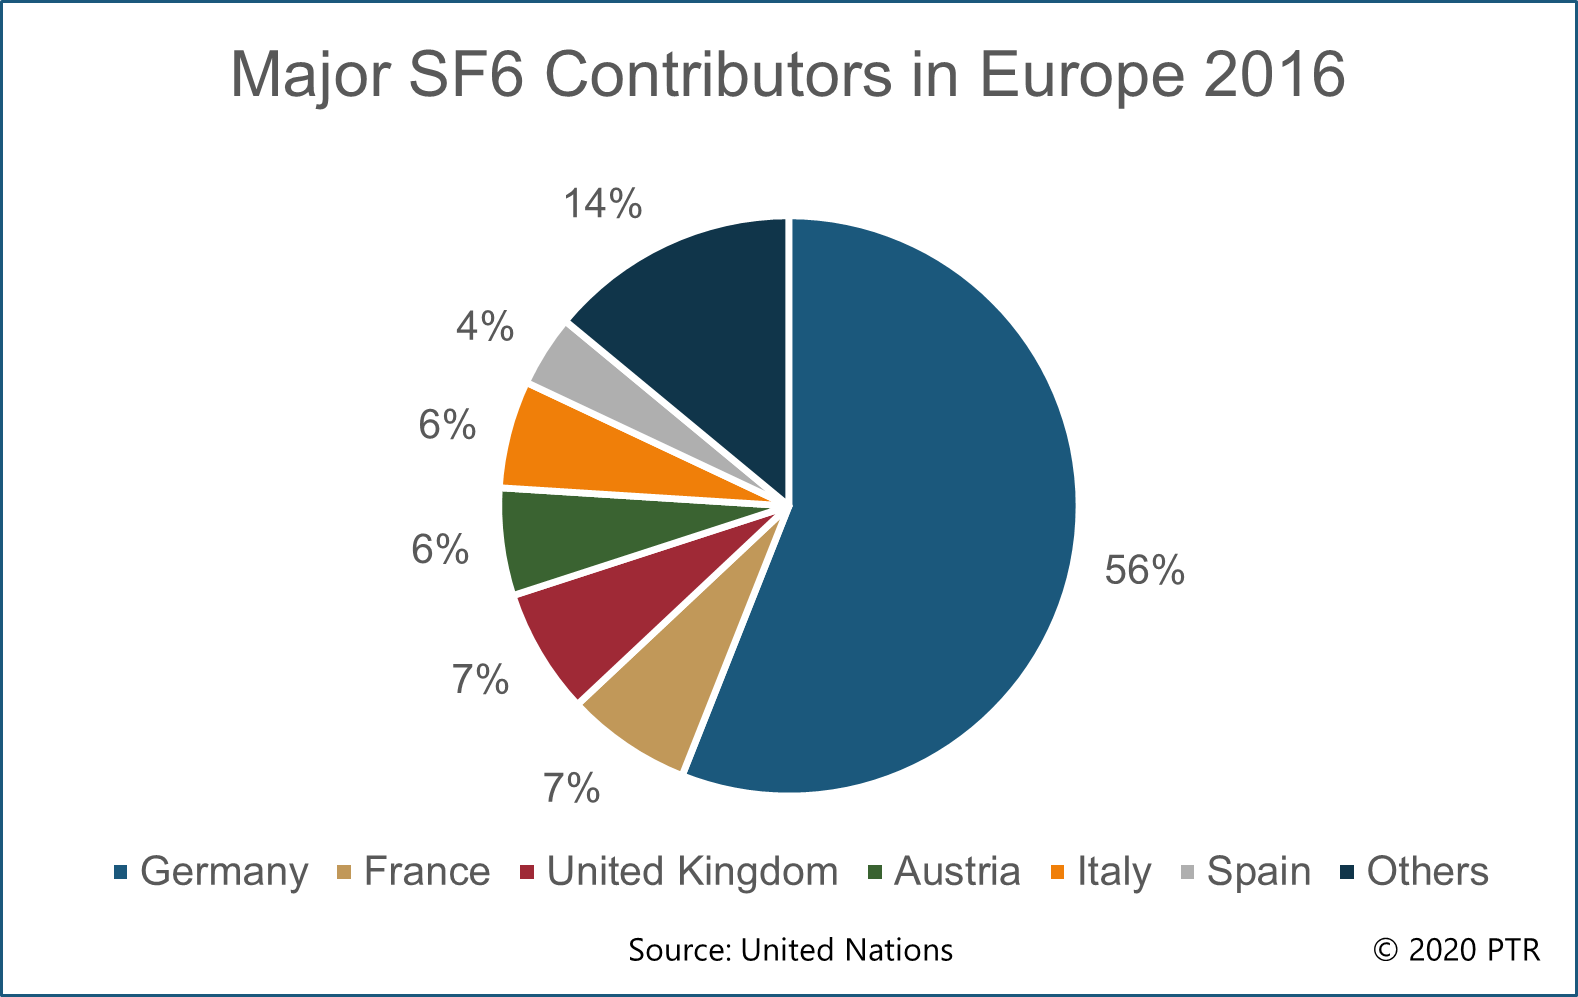 Major SF6 contributors in Europe (2016)